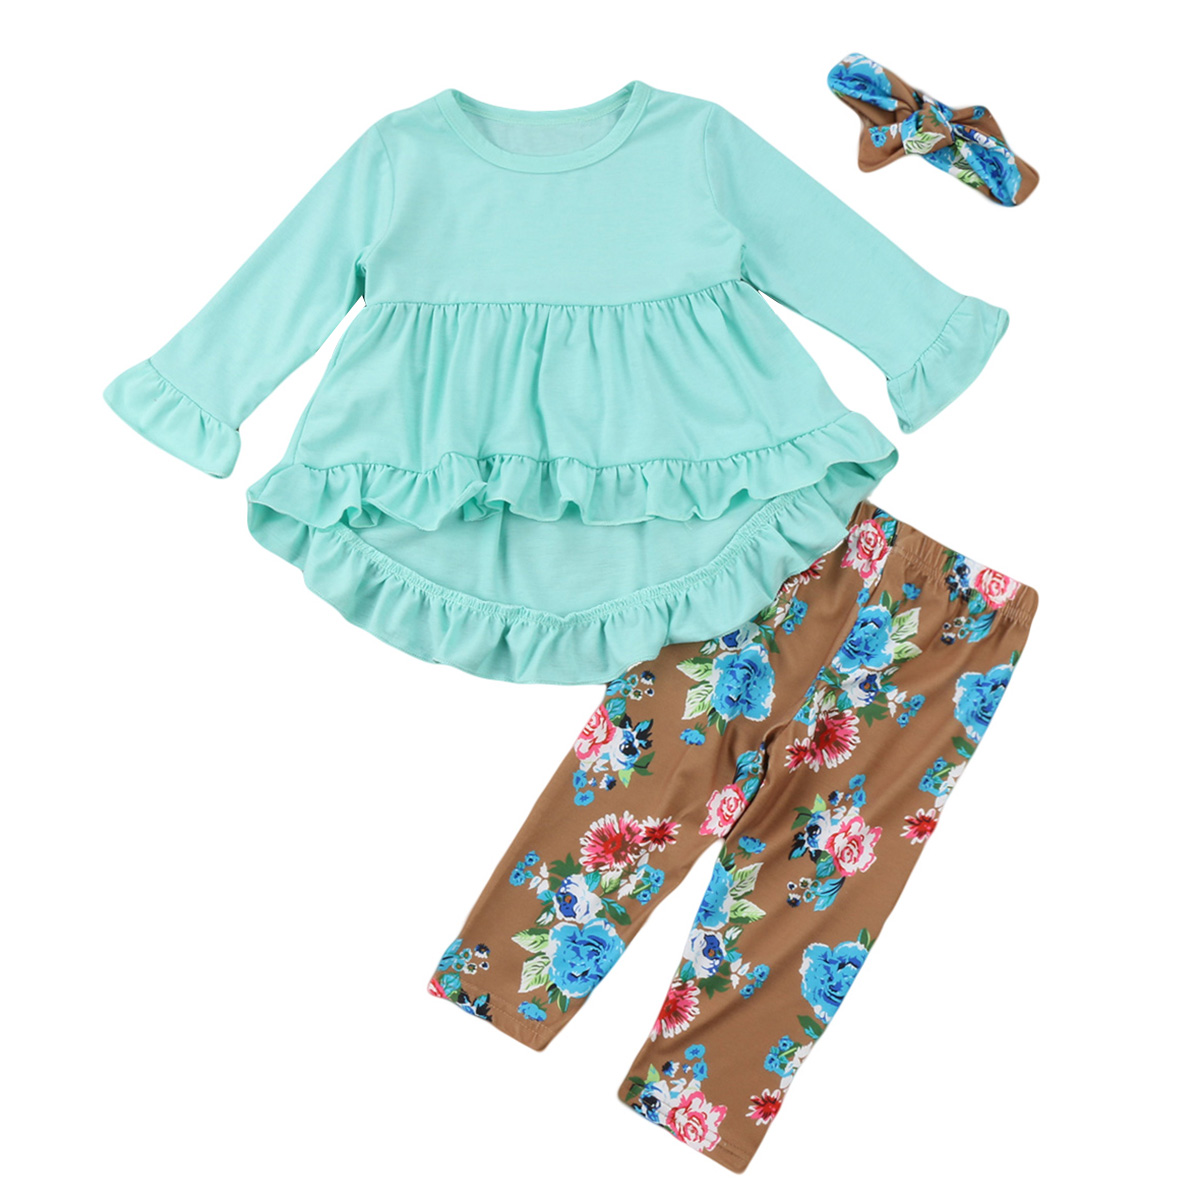 2017 New Fashion Children Girls Clothes blue ruffle t shirt Tops + floral pants Headband 3PCS Toddler Kids Clothing